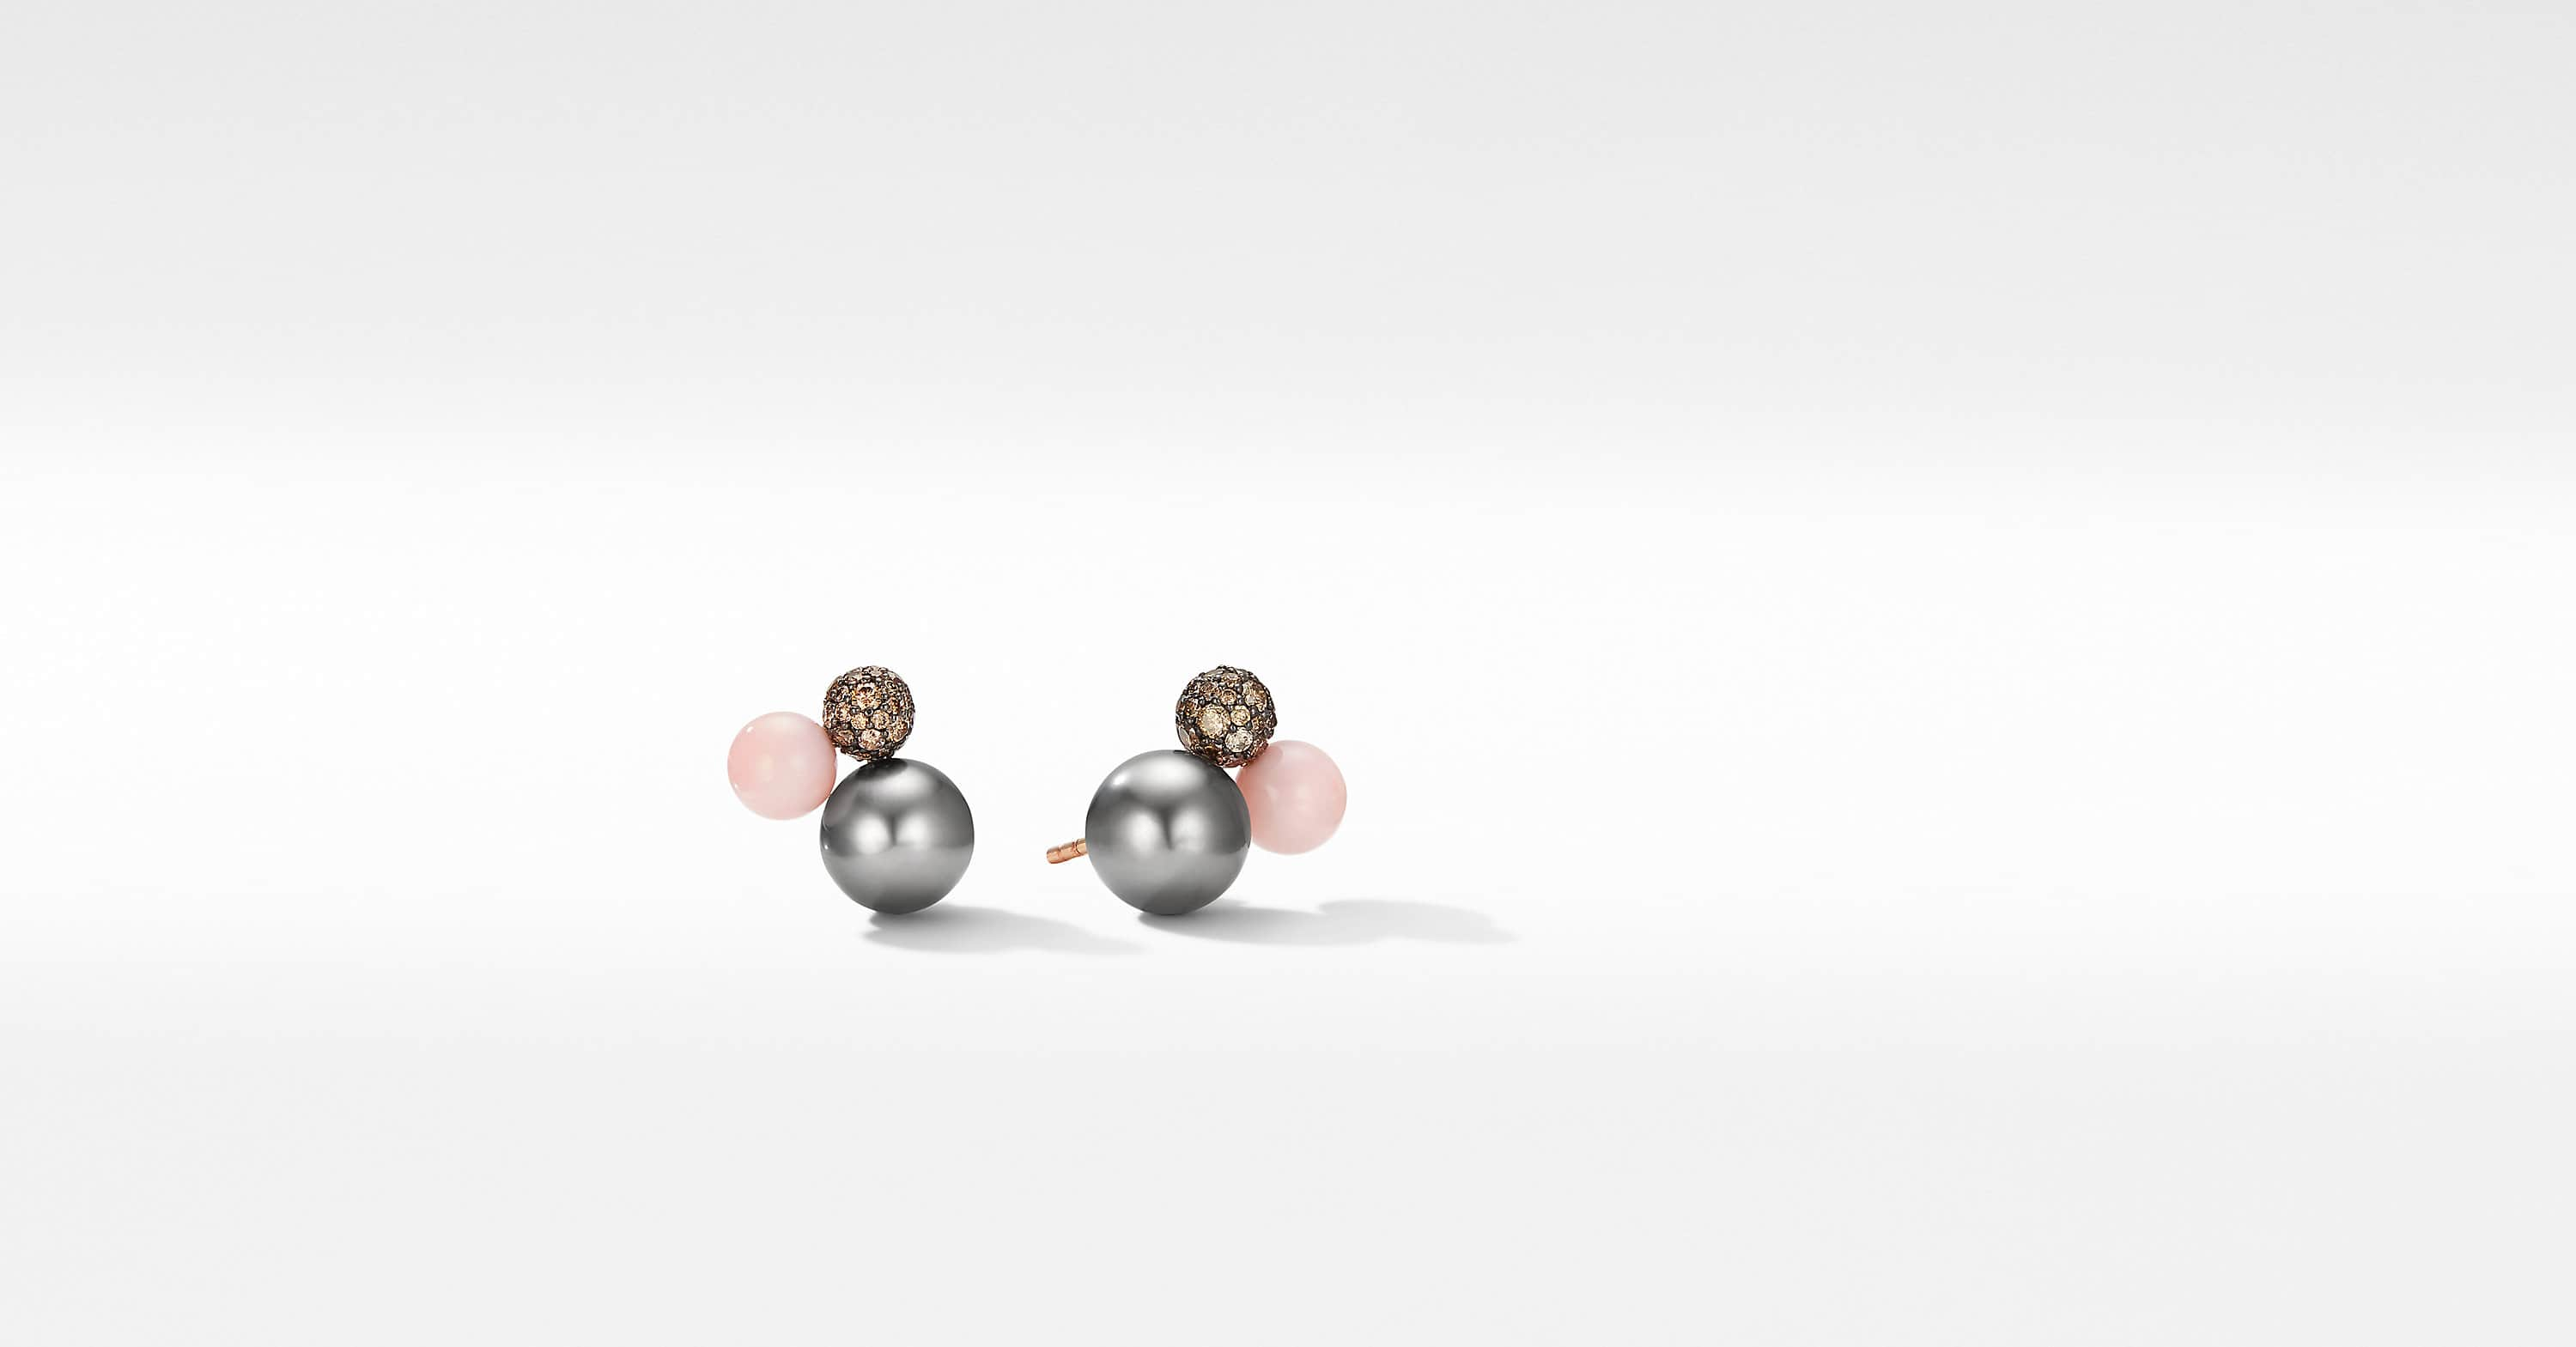 Clous d'oreilles en grappe Solari en or rose 18 carats avec diamants